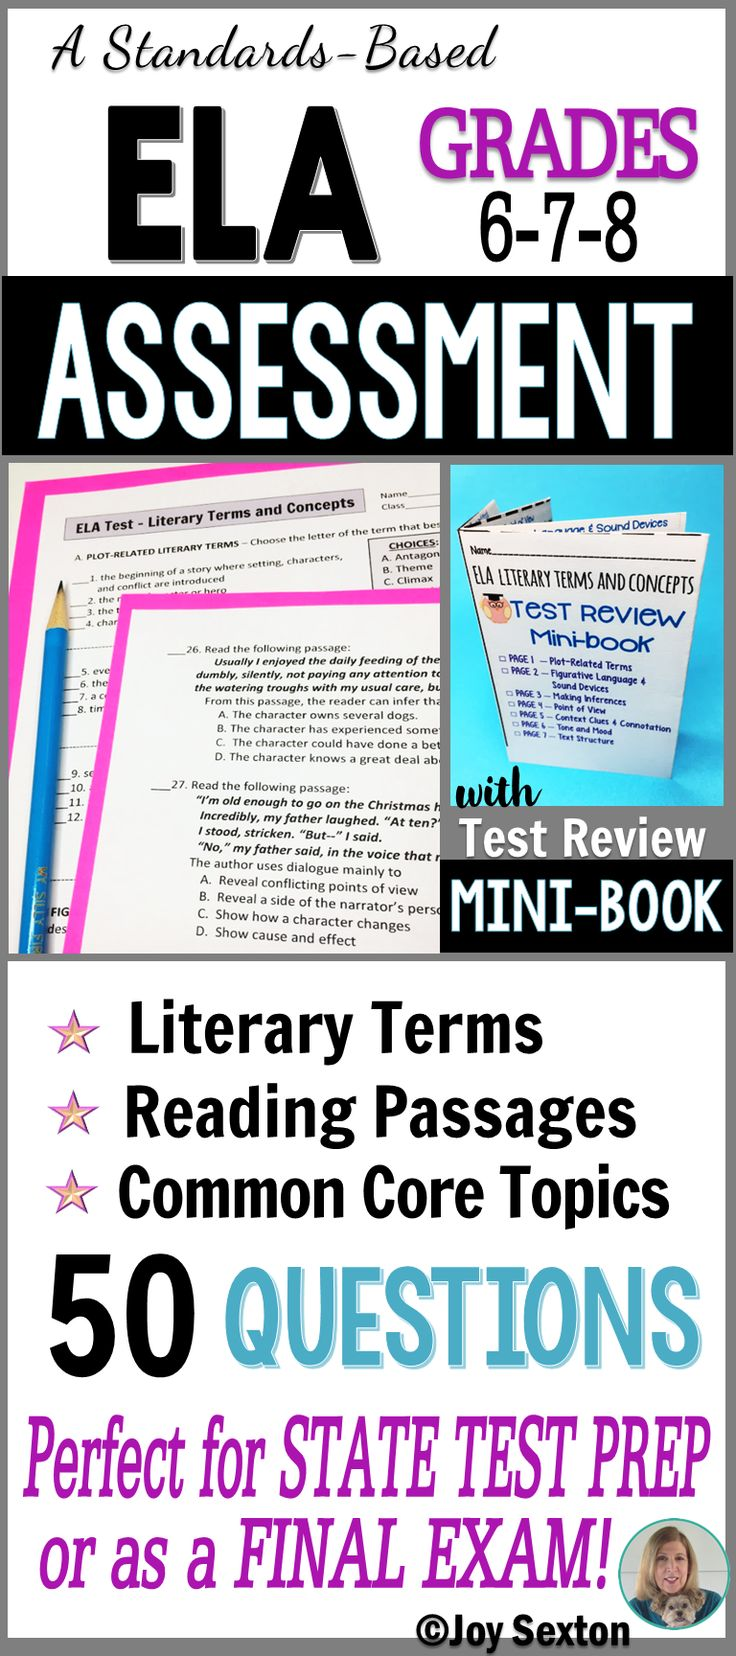 This 50-question Multiple Choice ELA Test comes with a 7-page MINI-BOOK so that students can review and practice Literary Terms and Common Core reading skills. Perfect for your final exam or use as practice before state testing!